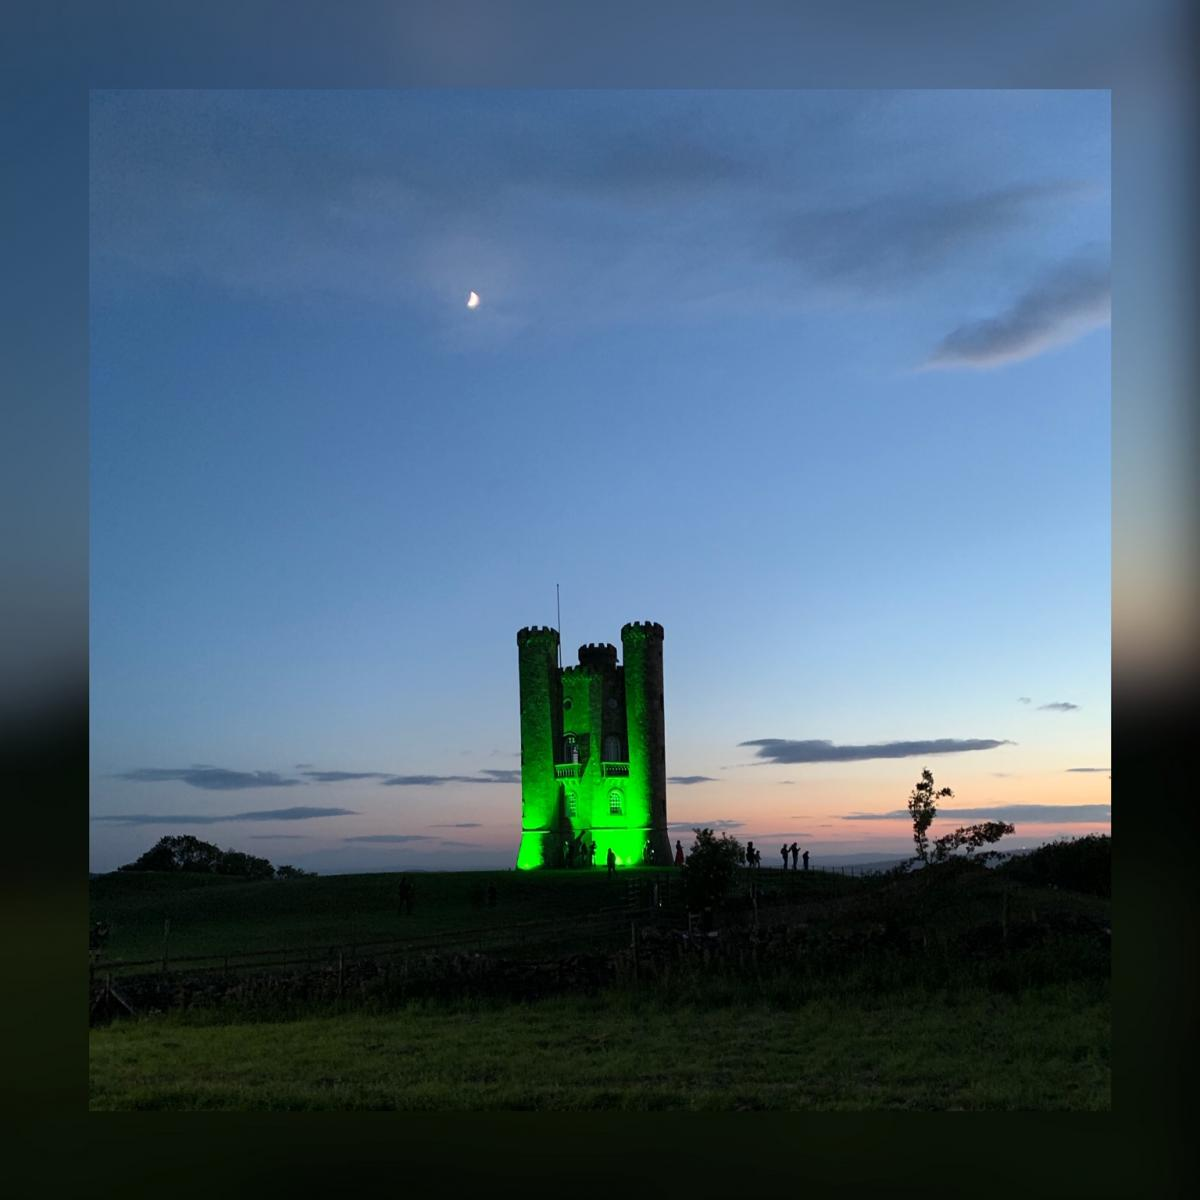 Broadway Tower lit up in Heineken Green with the moon and sunset in the background